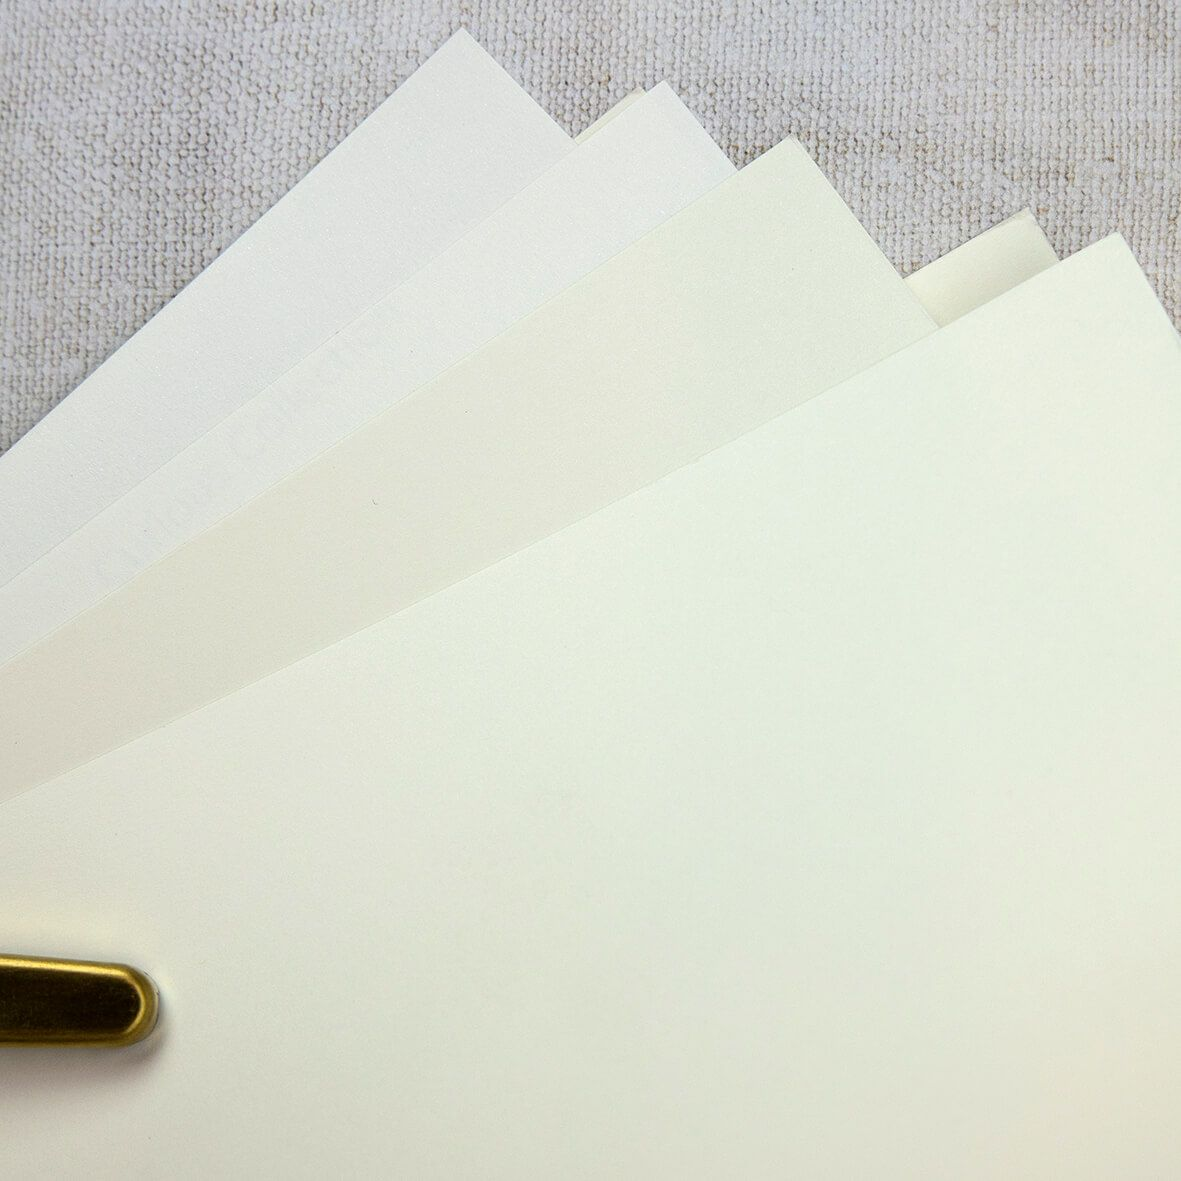 White, Ivory & Cream Paper category image